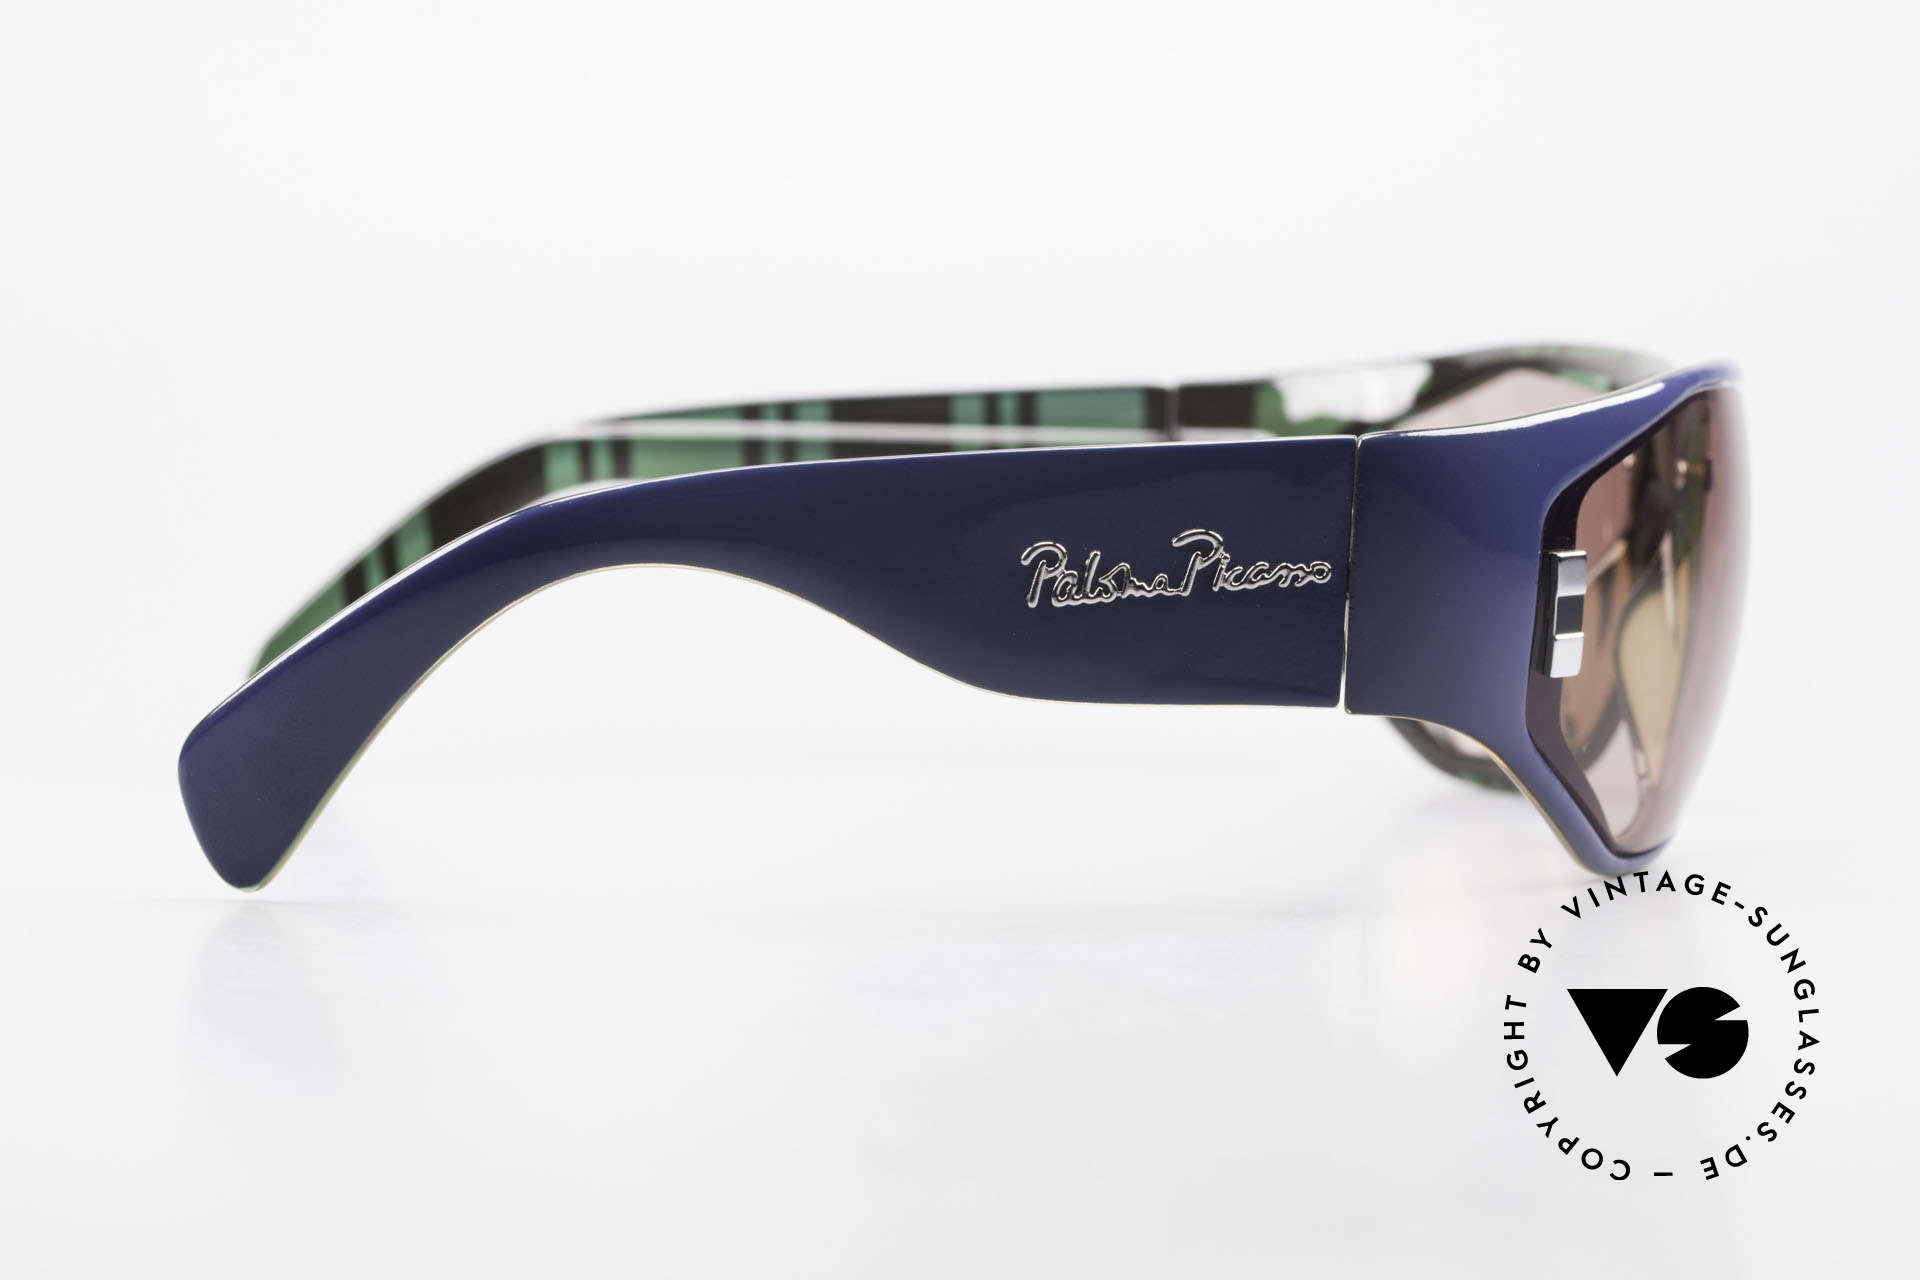 Paloma Picasso 3701 Wrap Around Sunglasses Ladies, of course never worn (as all our old 90's treasures), Made for Women